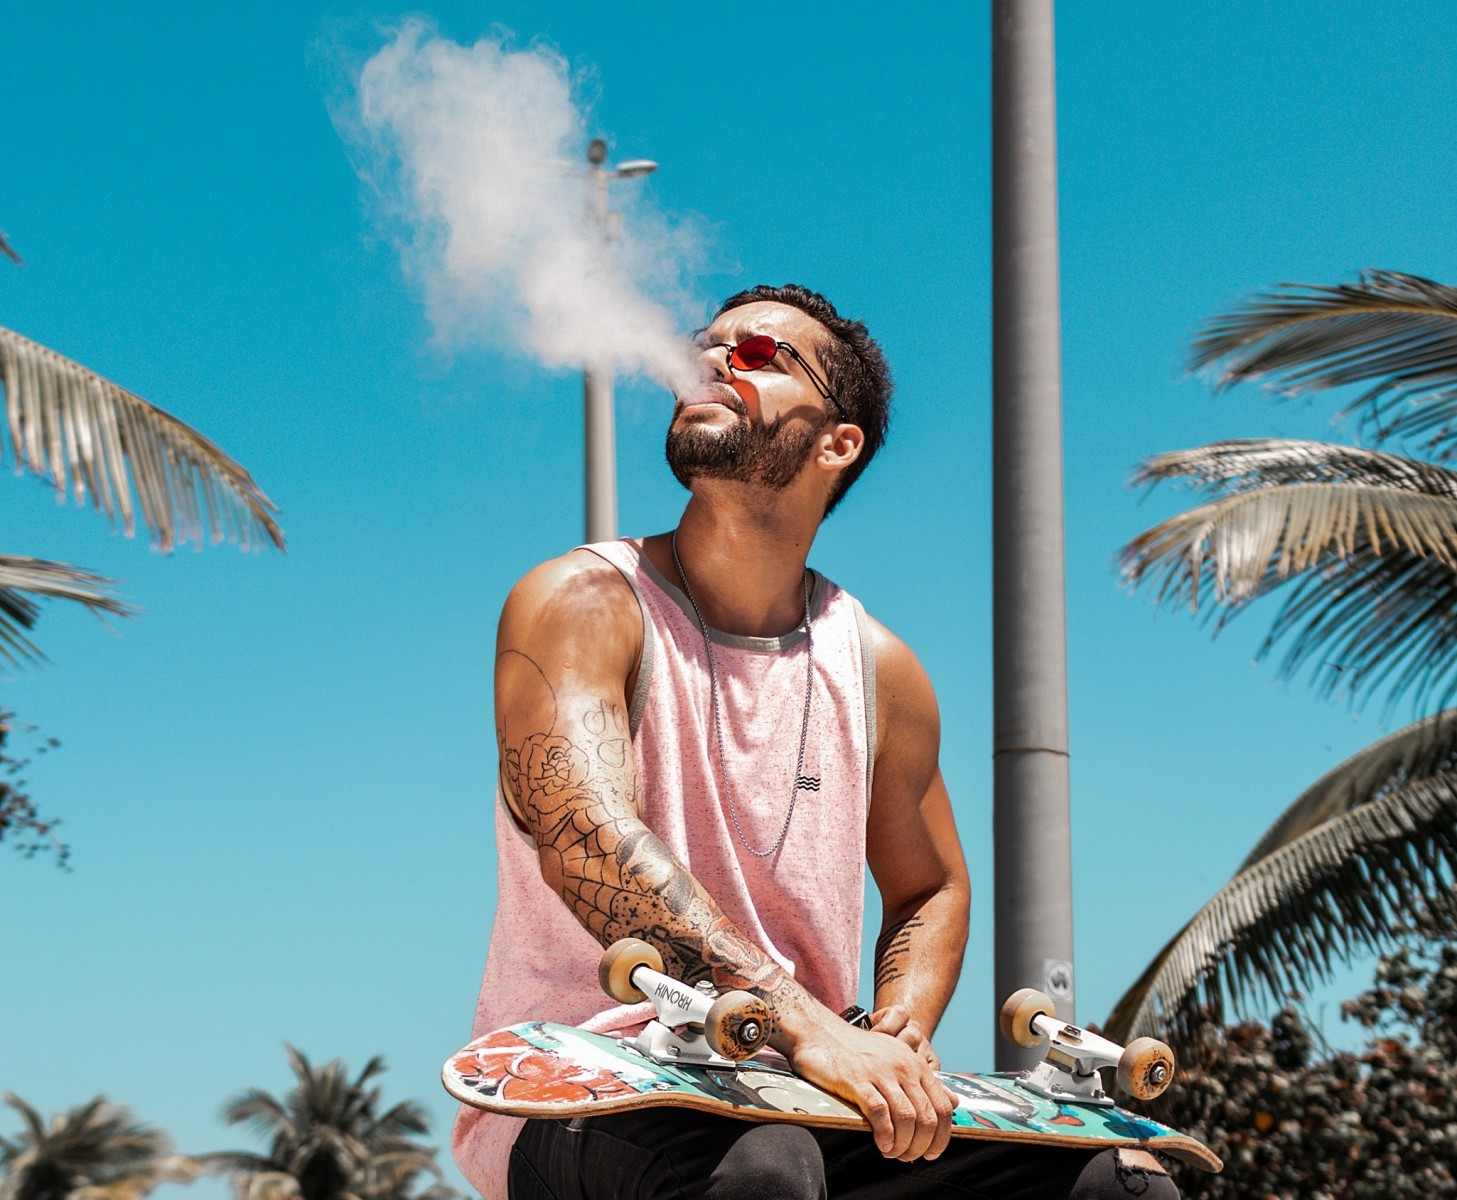 It matters if social media posts featuring vaping are marked as ads.